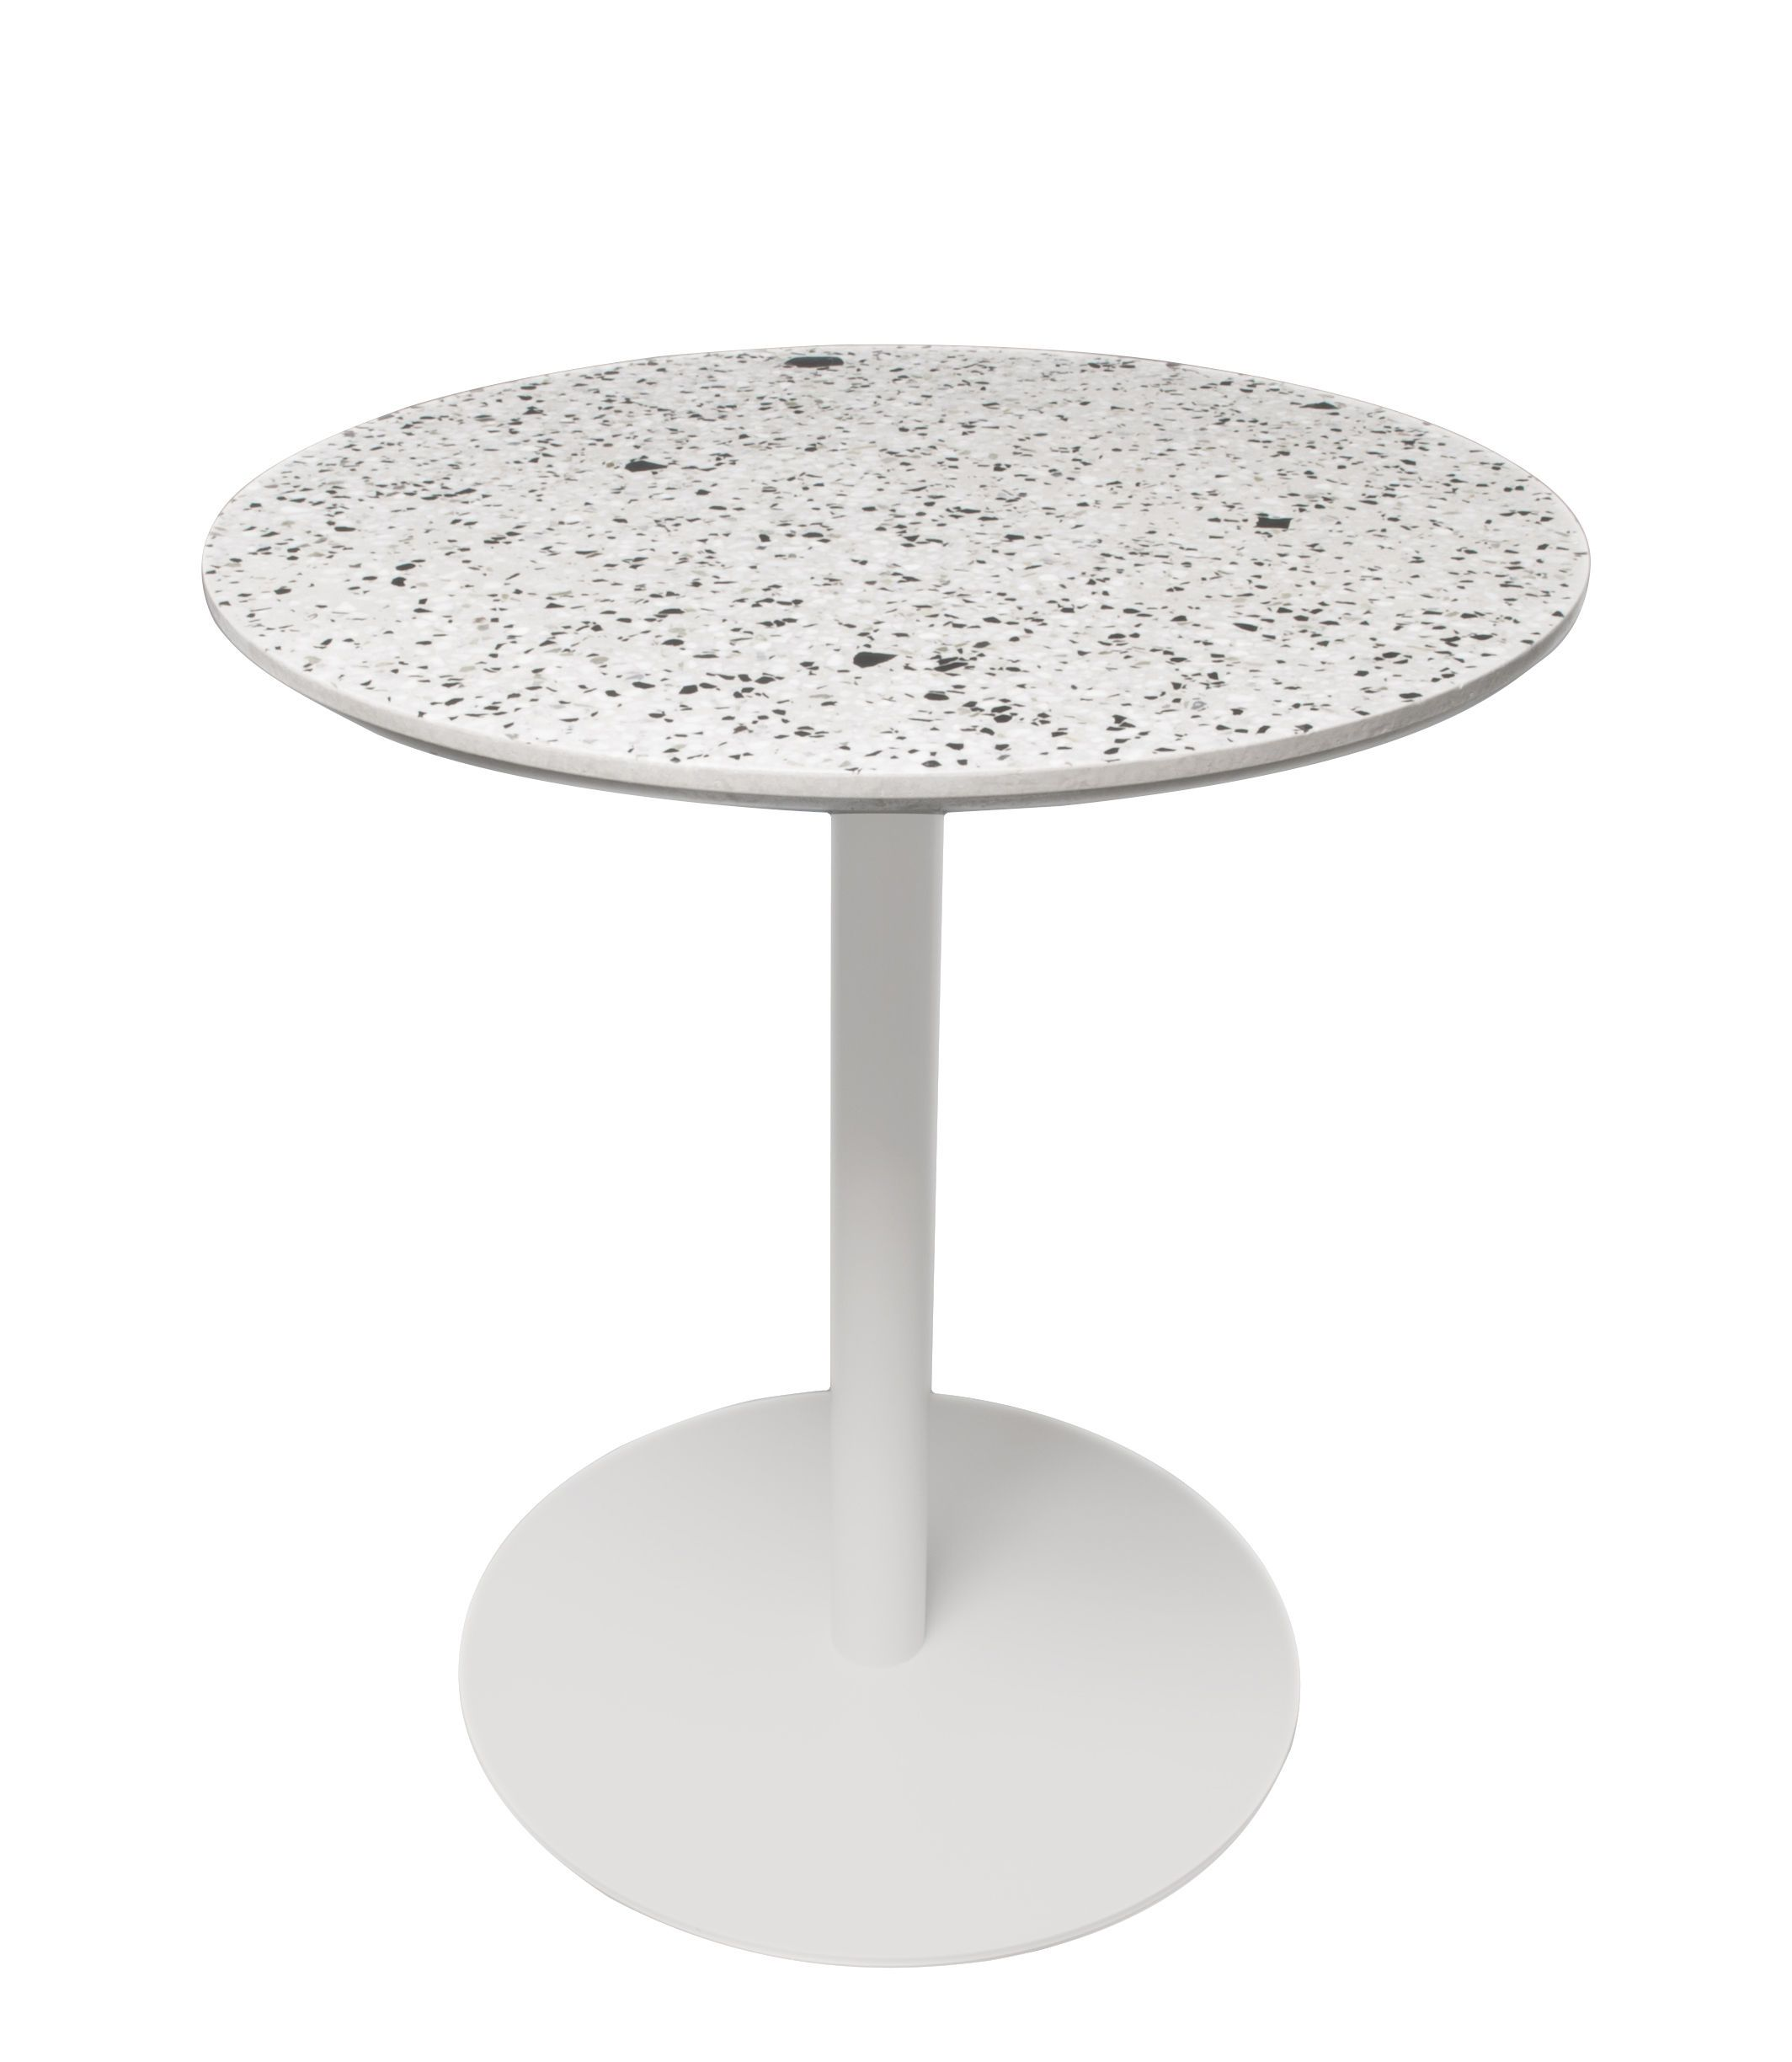 Xl Boom Terrazzo Round Table White Made In Design Uk